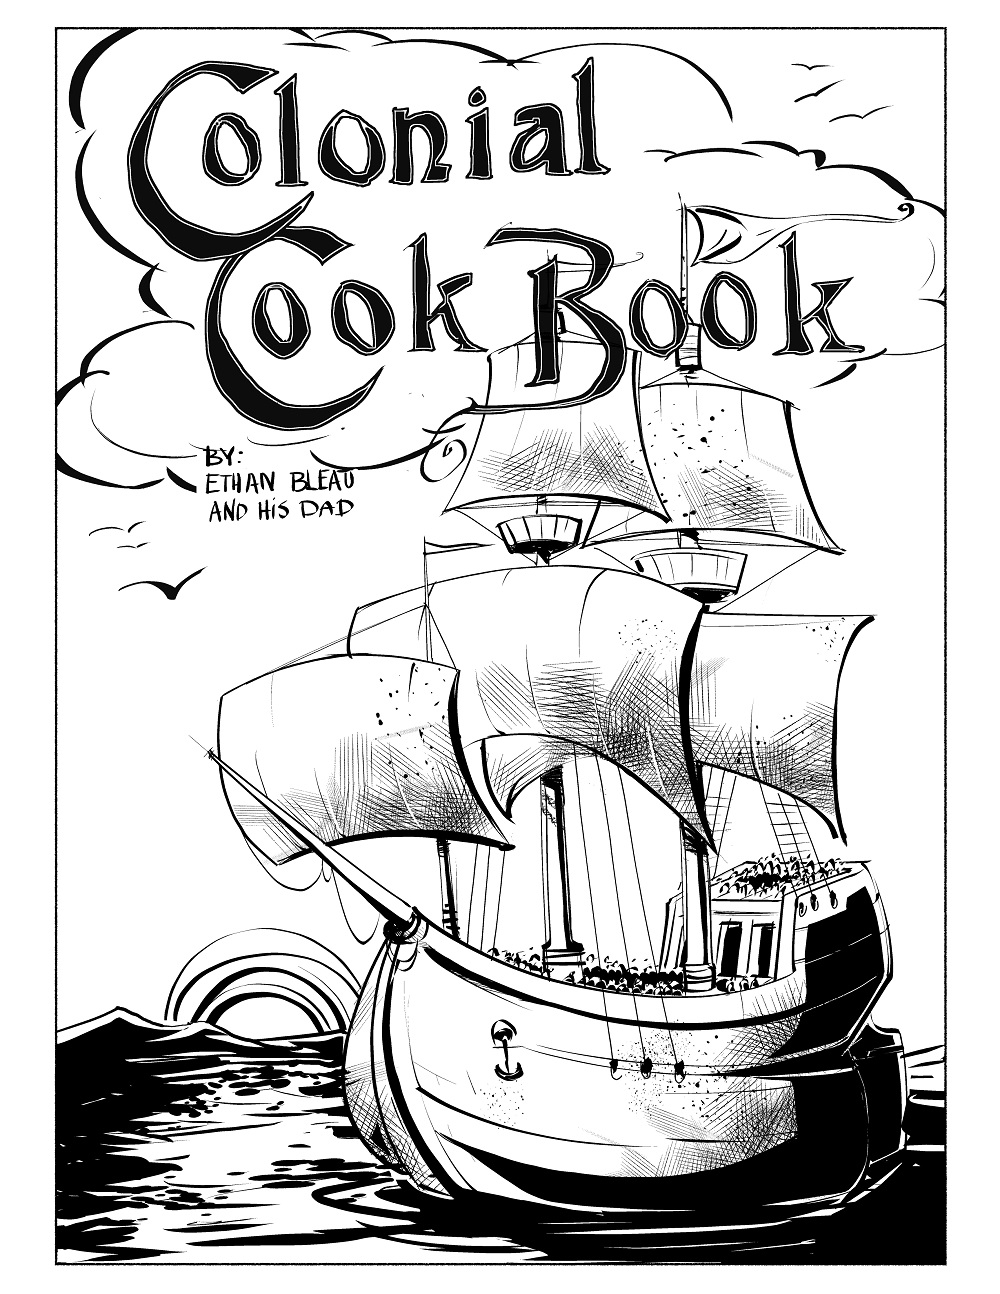 Colonial Cookbook 1_28_15 final 3-1.jpg